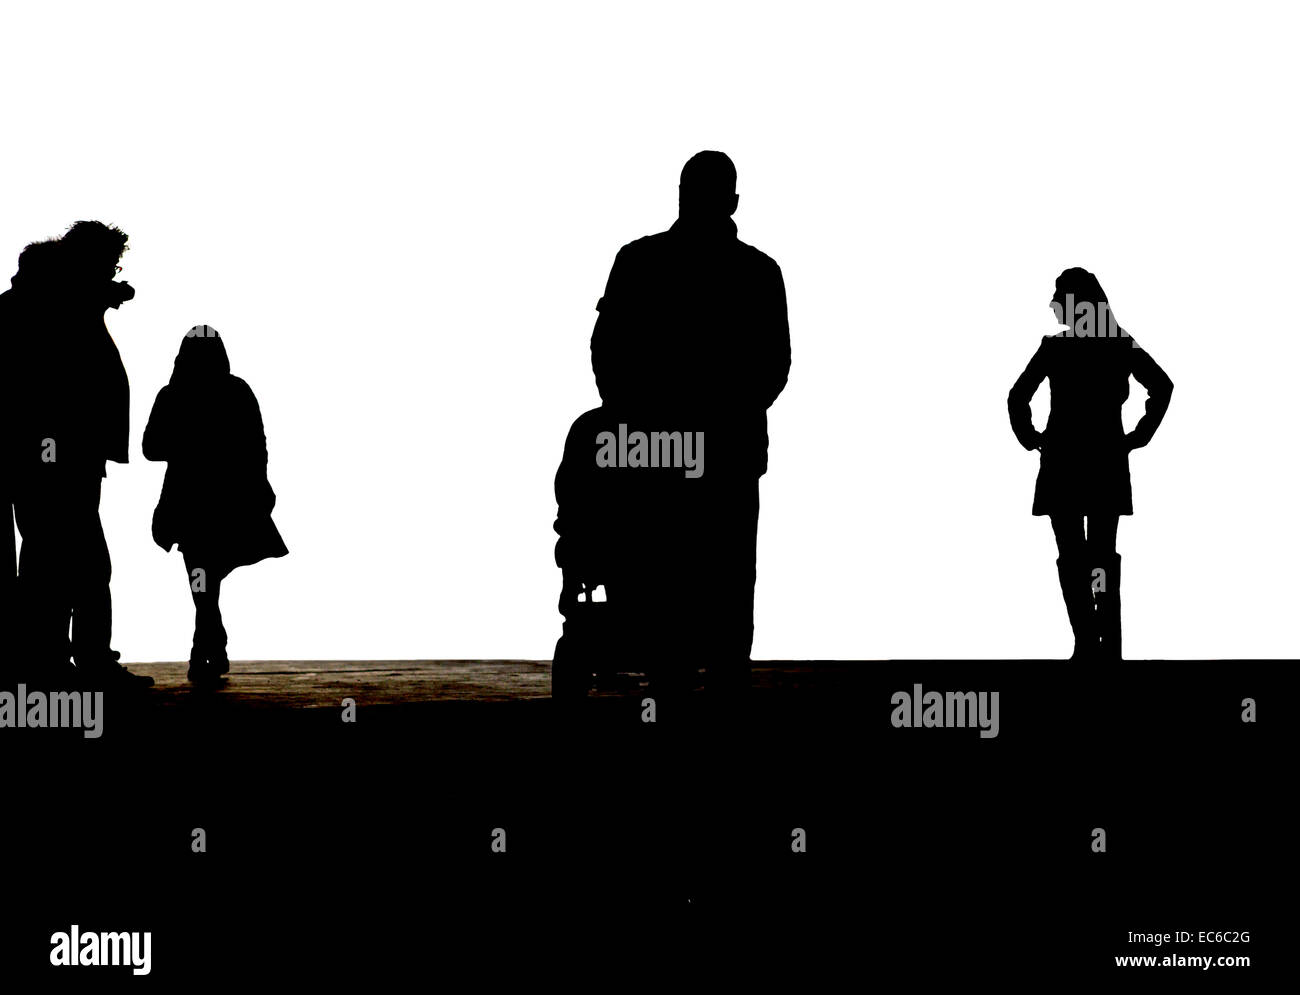 Silhouettes - Stock Image